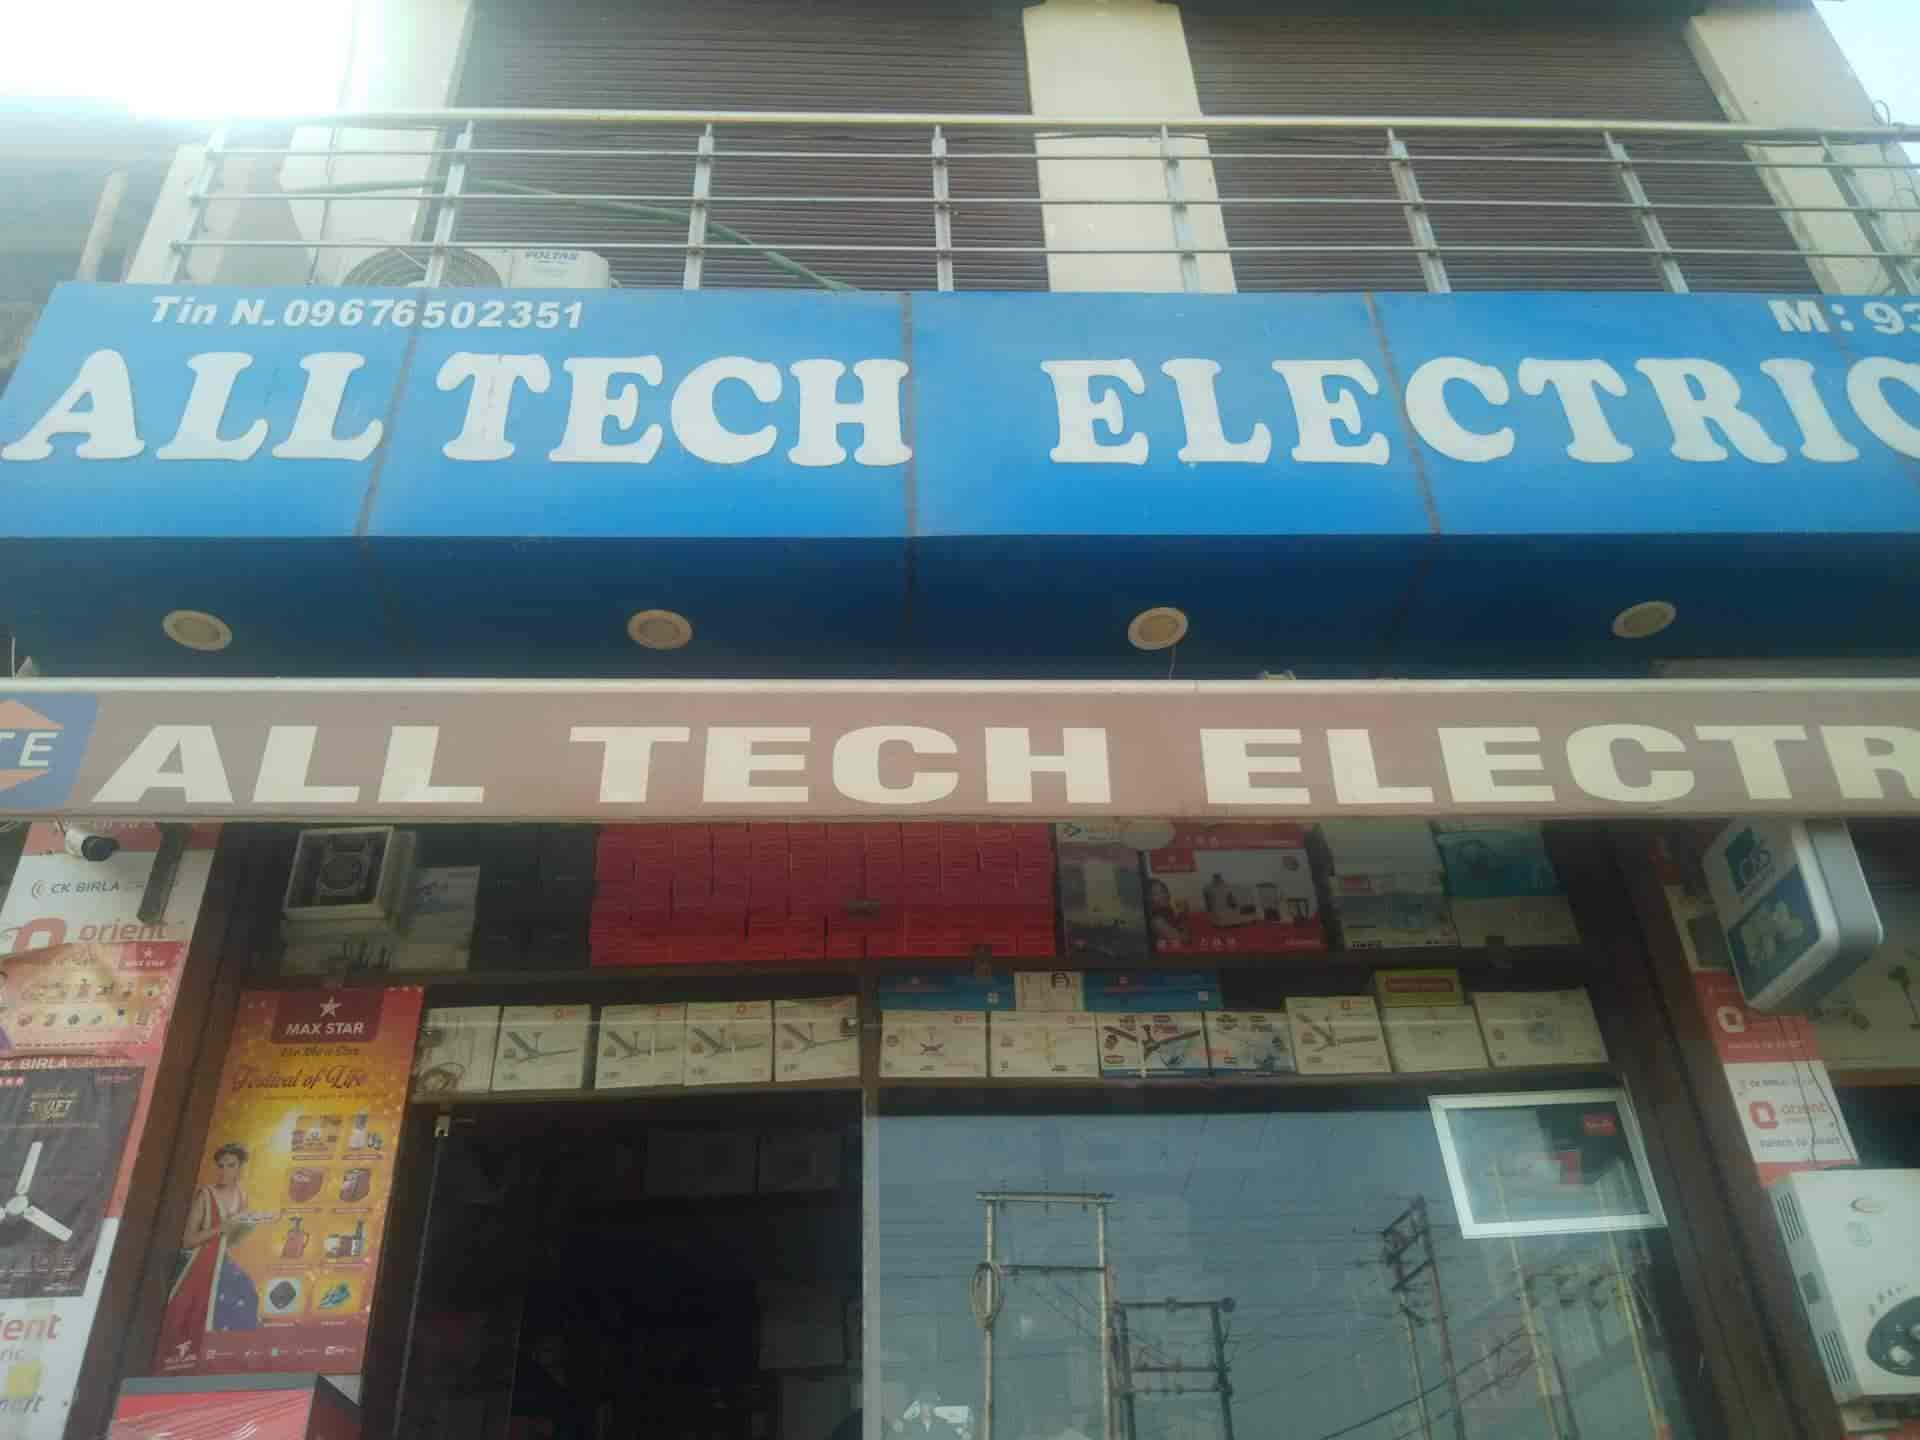 All Tech Electricals Cantt Electronic Goods Showrooms In Meerut Justdial